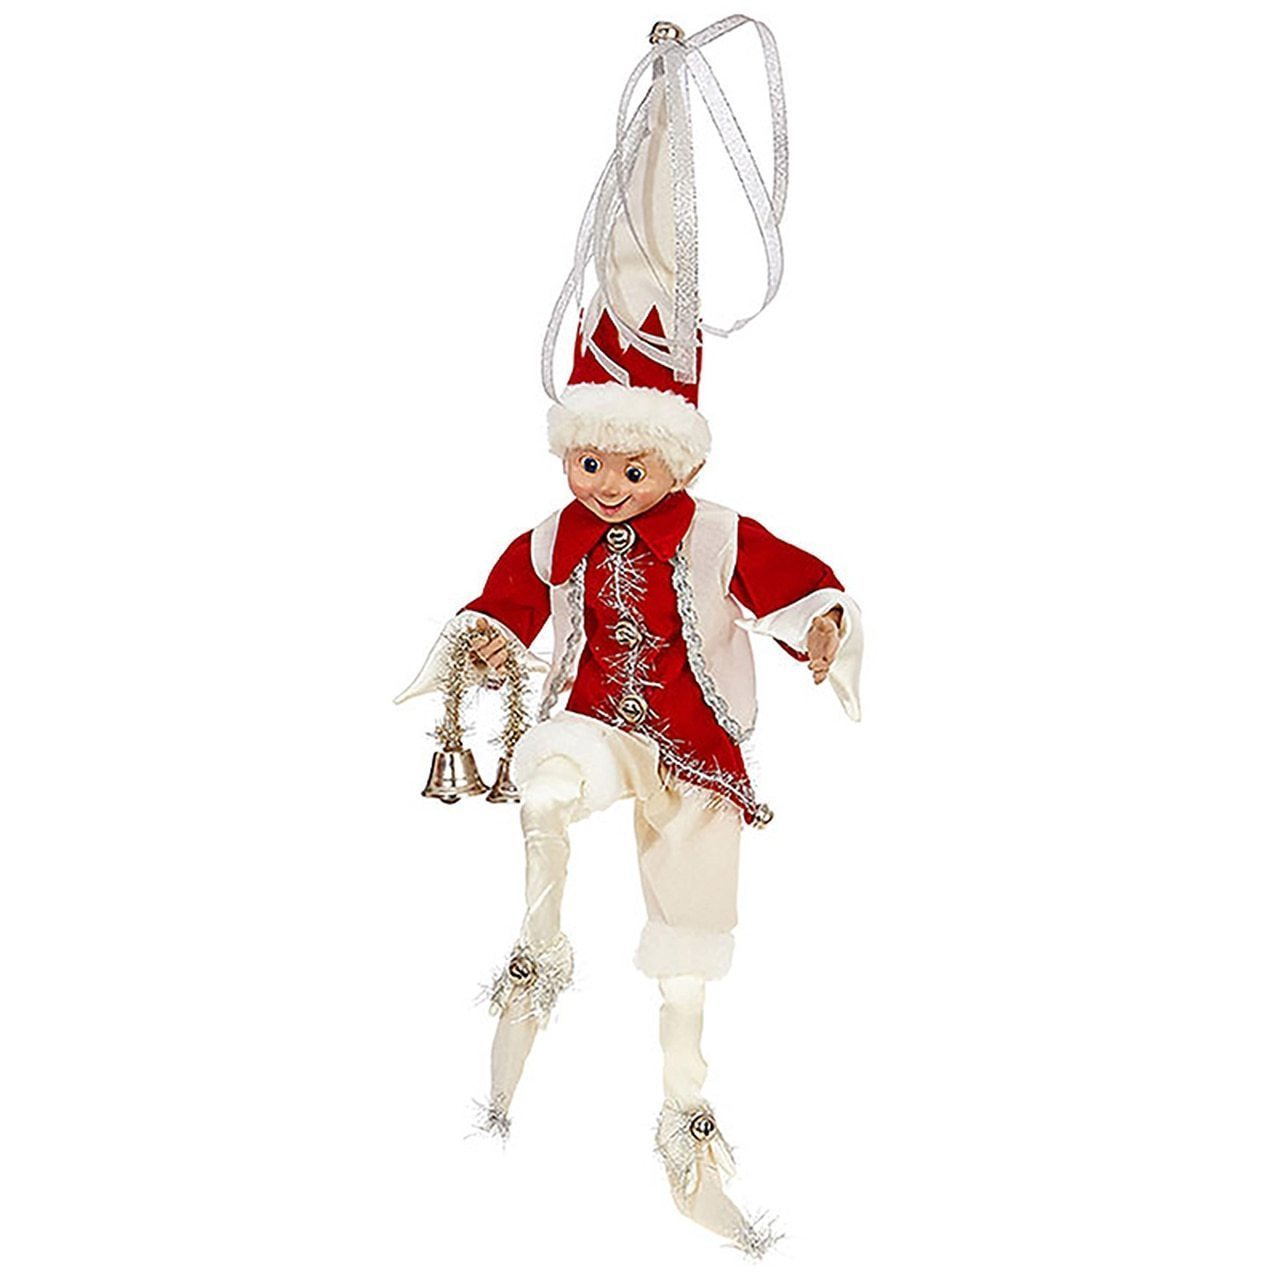 Silver,Cream,and Red Posable Elf Christmas Figure